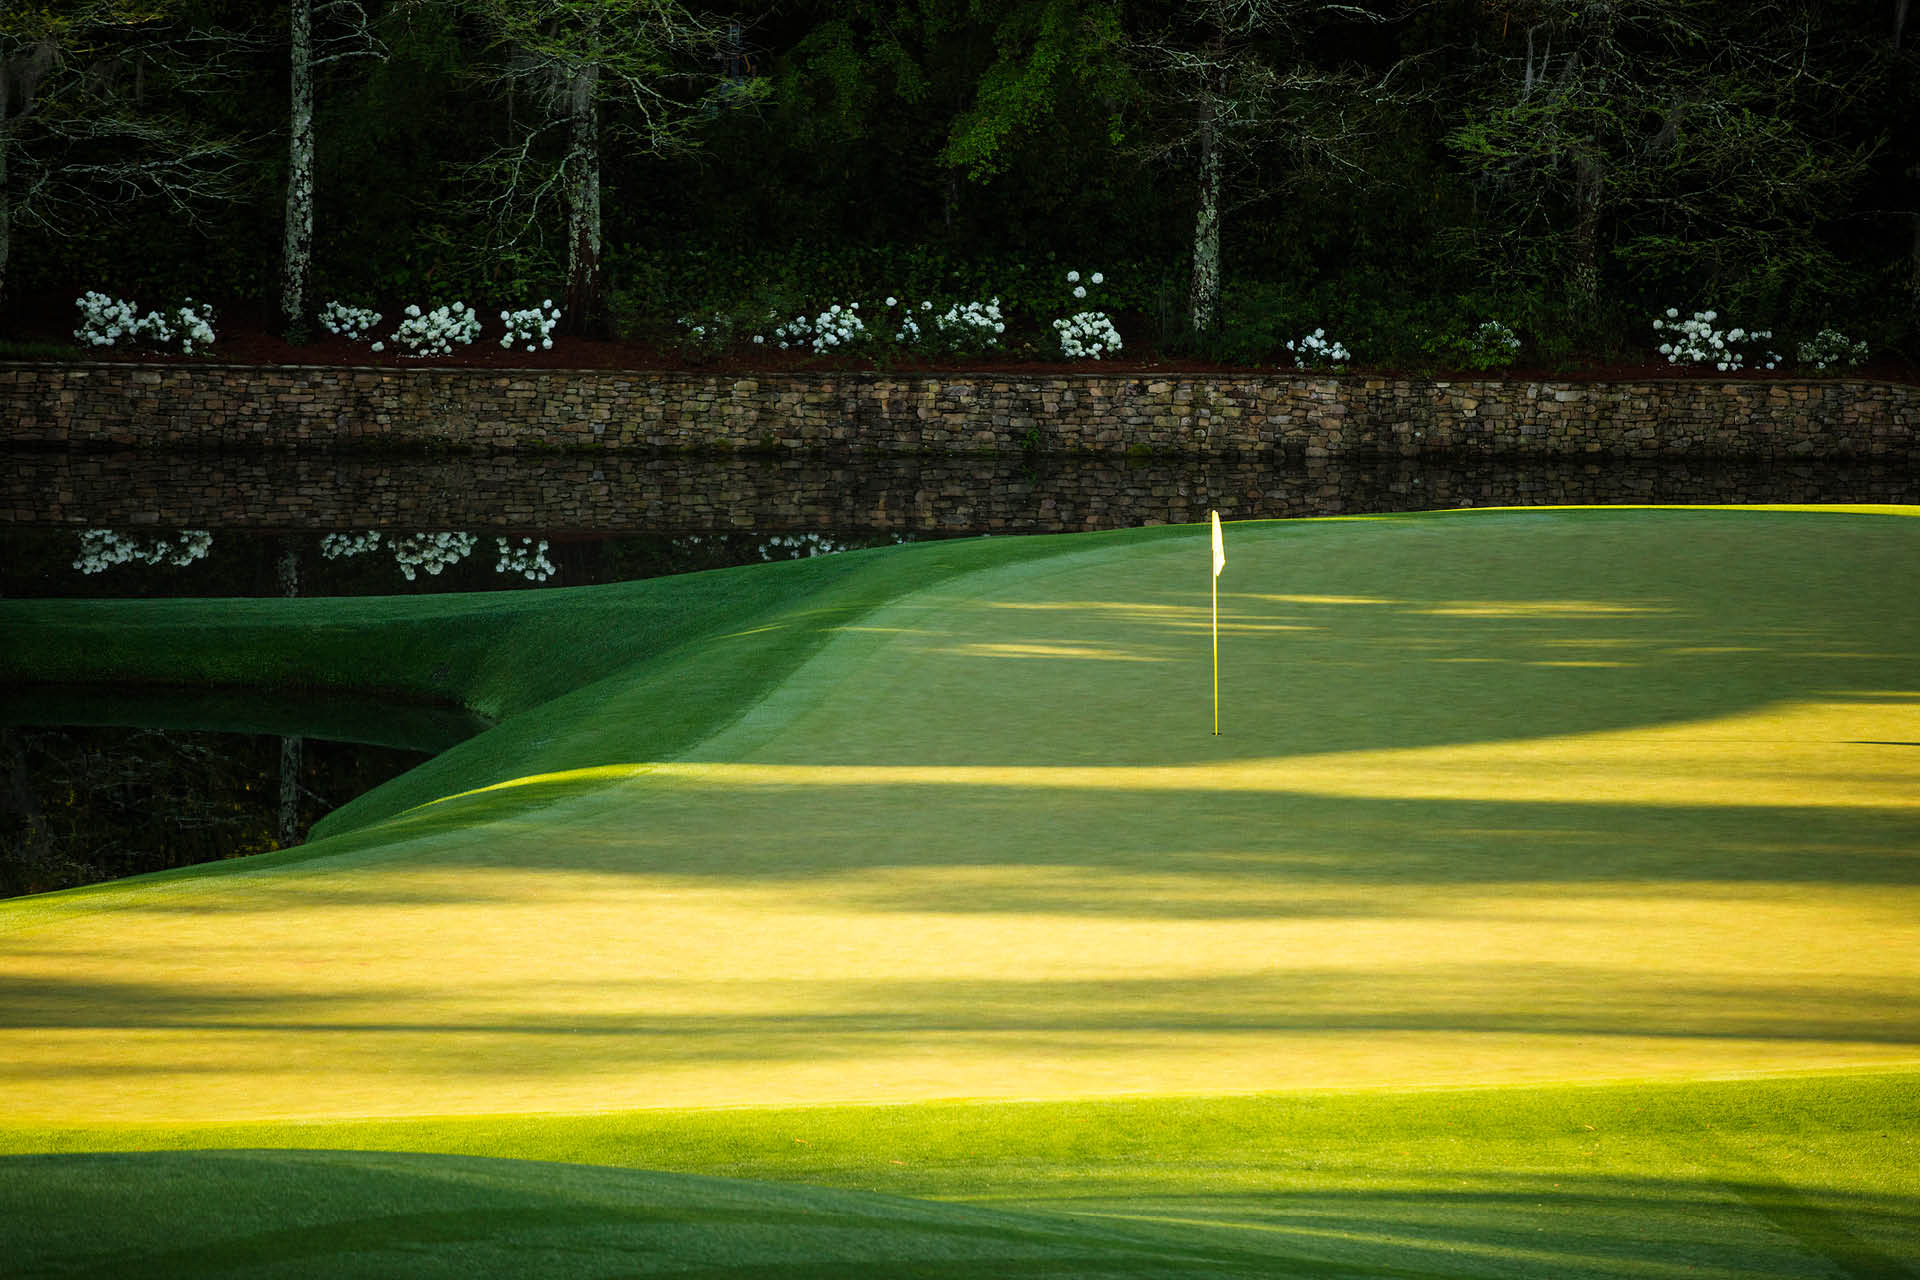 """""""If there's a golf course in heaven, I hope it's like Augusta National."""" - Gary Player"""